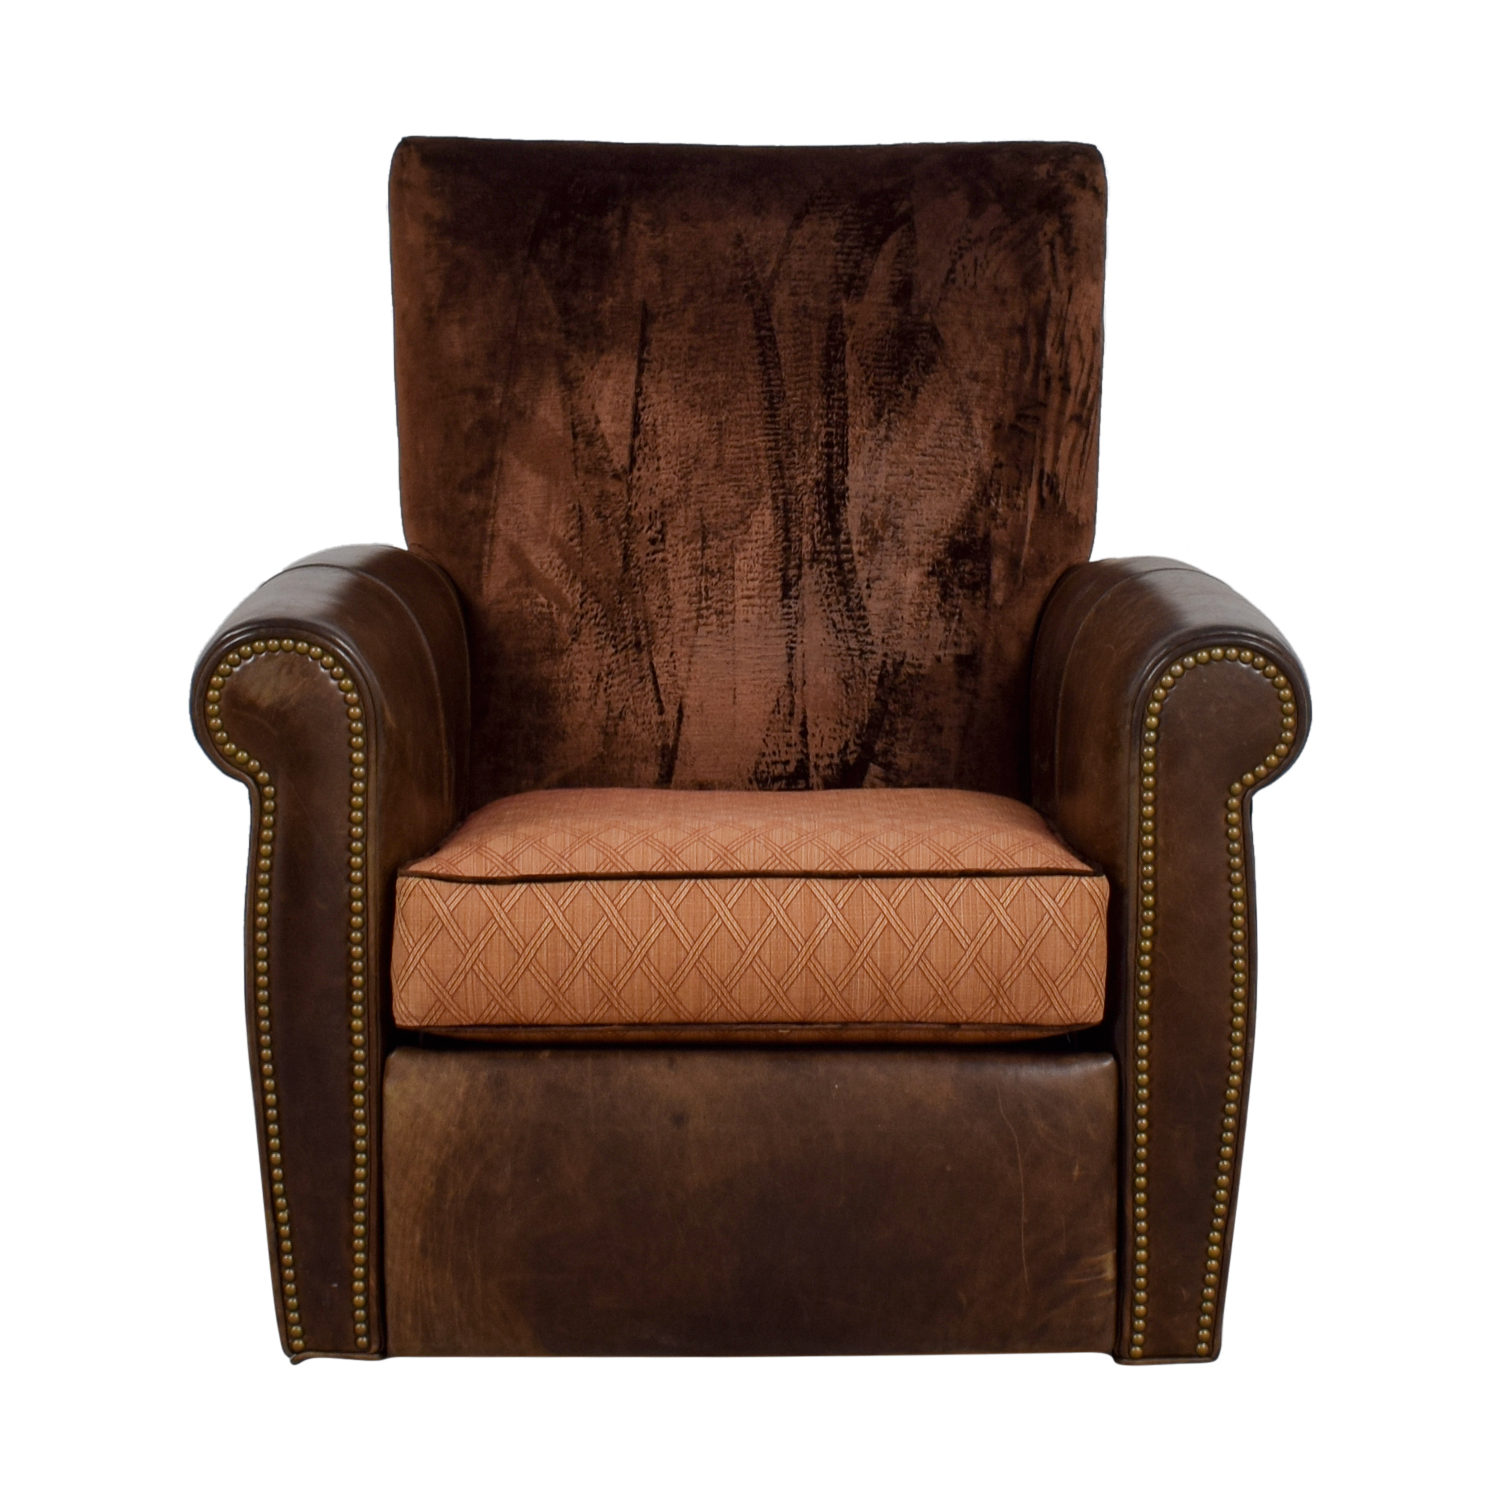 Arhaus Brown Leather and Velvet Nailhead Swivel Recliner sale